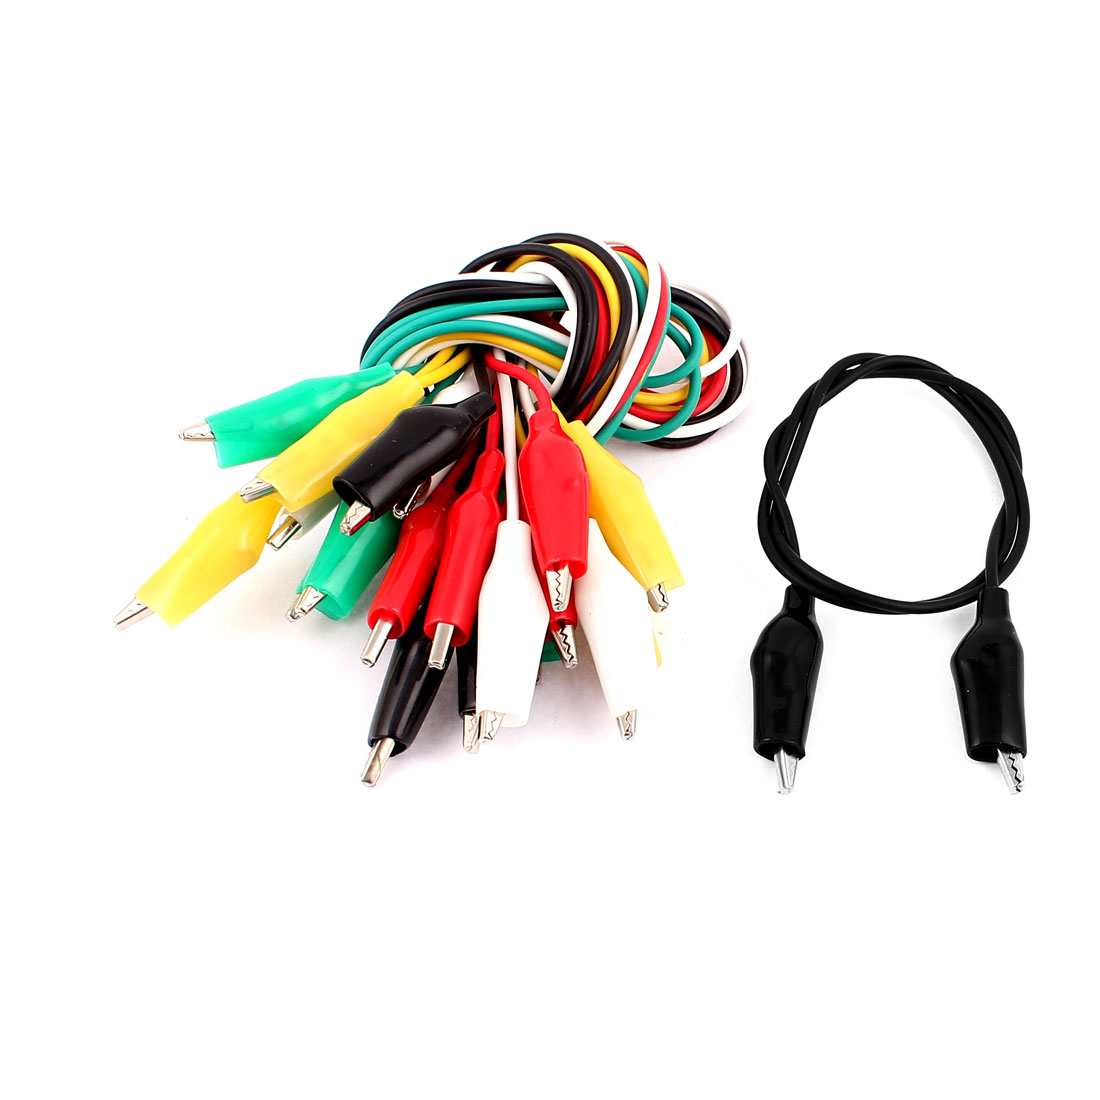 10pcs Assorted Color Dual Ended Alligator Crocodile Clip Test Leads Jumper Wire Cable 47cm